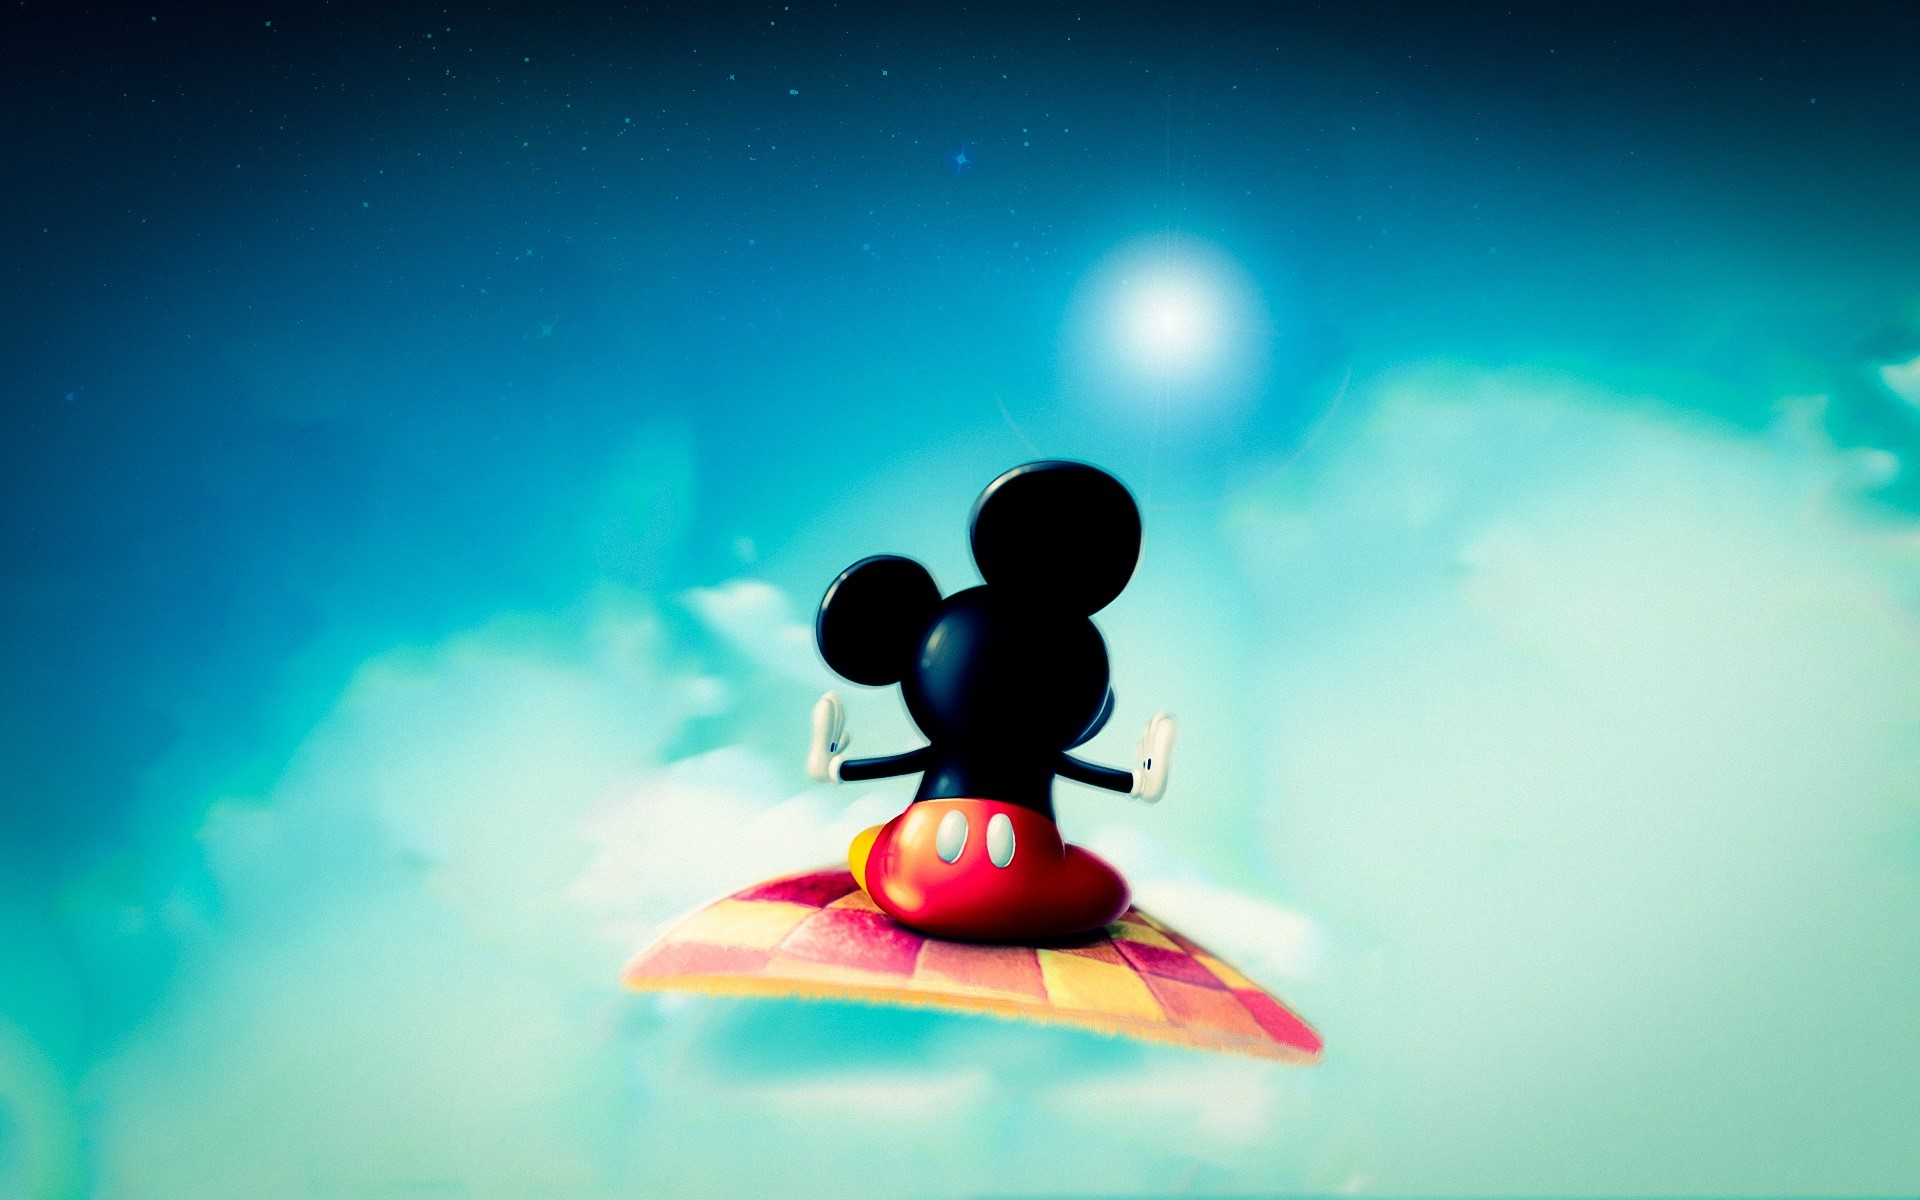 Wallpaper Mickey Mouse en una alfombra Images